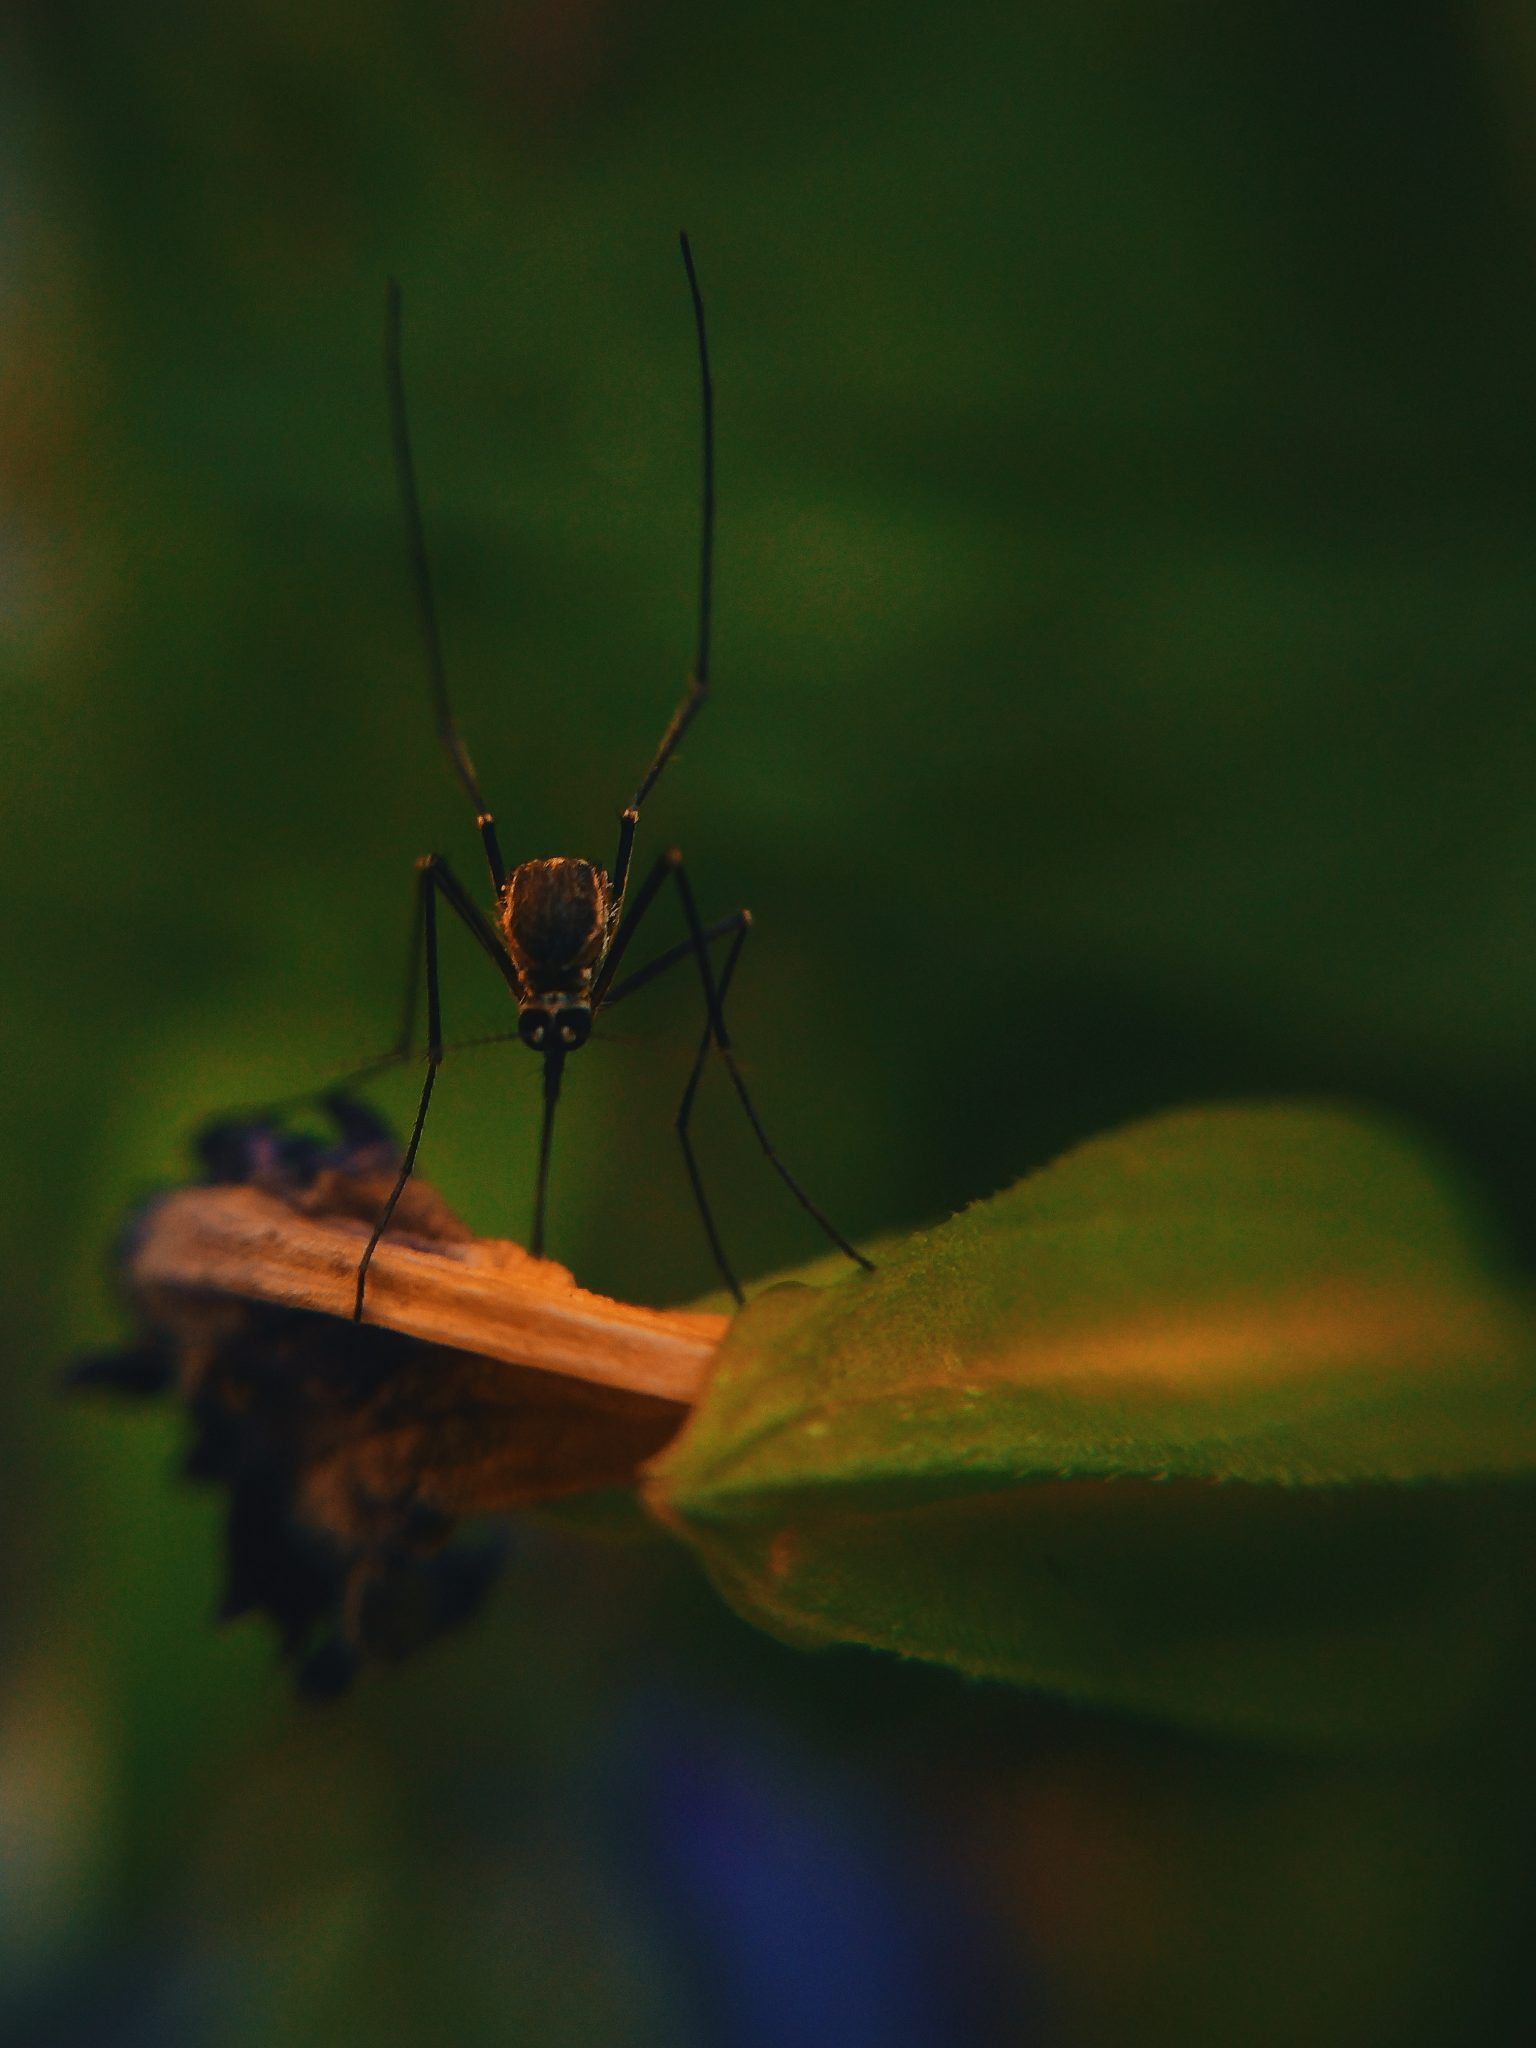 Mosquito Control Tips. Are Mosquitos Bites Dangerous?